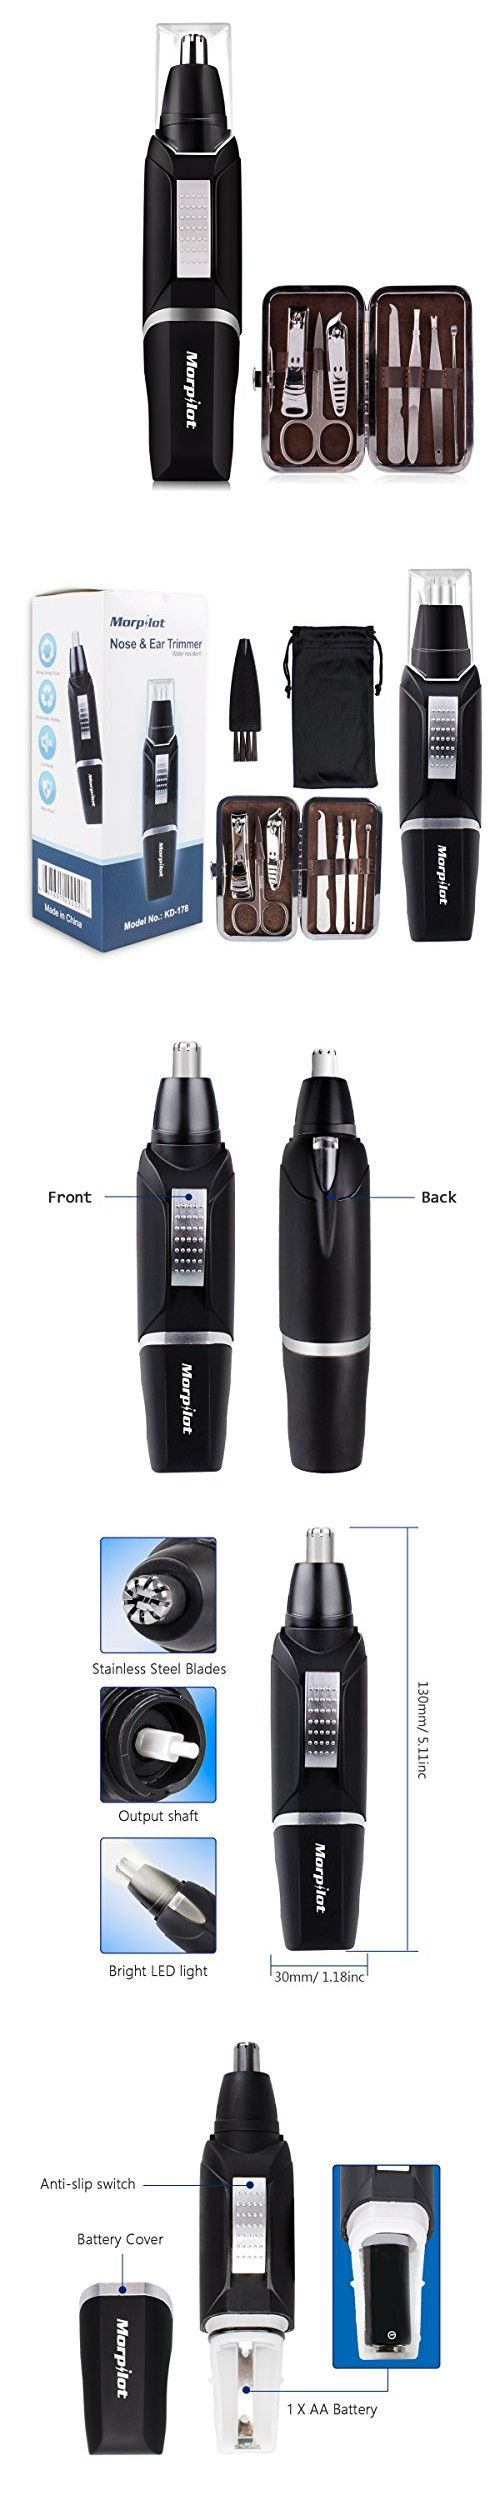 Morpilot Nose Ear Hair Trimmer for Men Water Resistant with LED light High-Speed Rotation Battery-Operated + Manicure Set, Men's Gifts for Christmas.